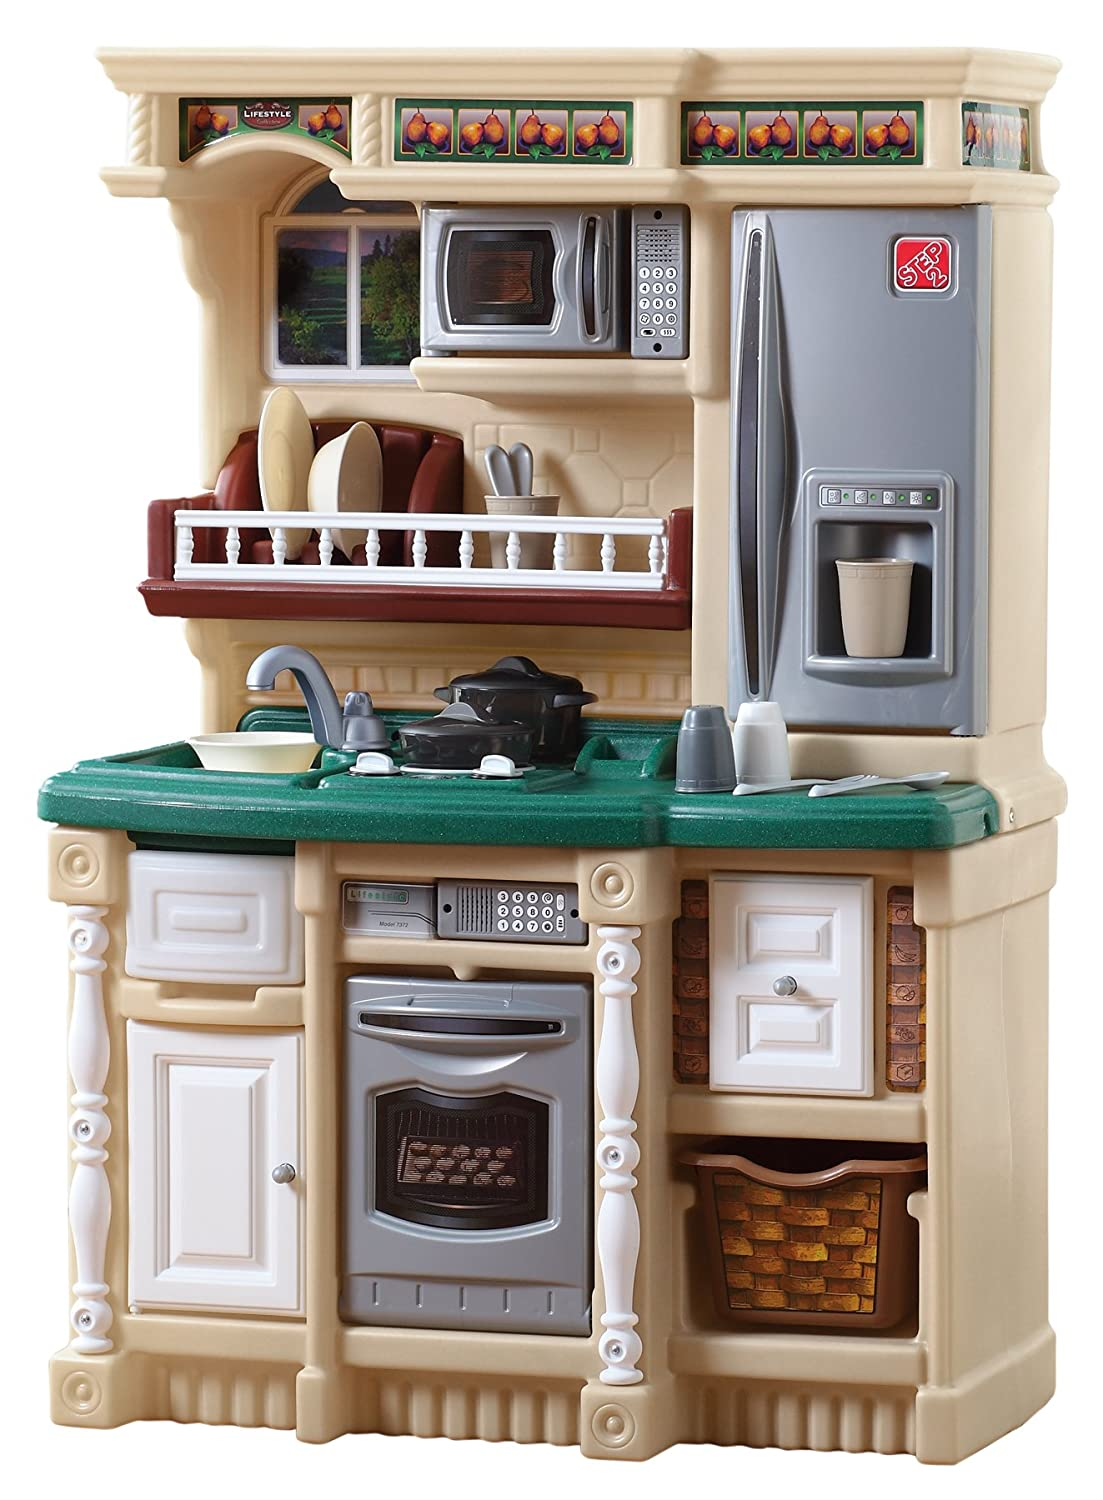 amazoncom step2 lifestyle custom kitchen toys games - Step2 Kitchen